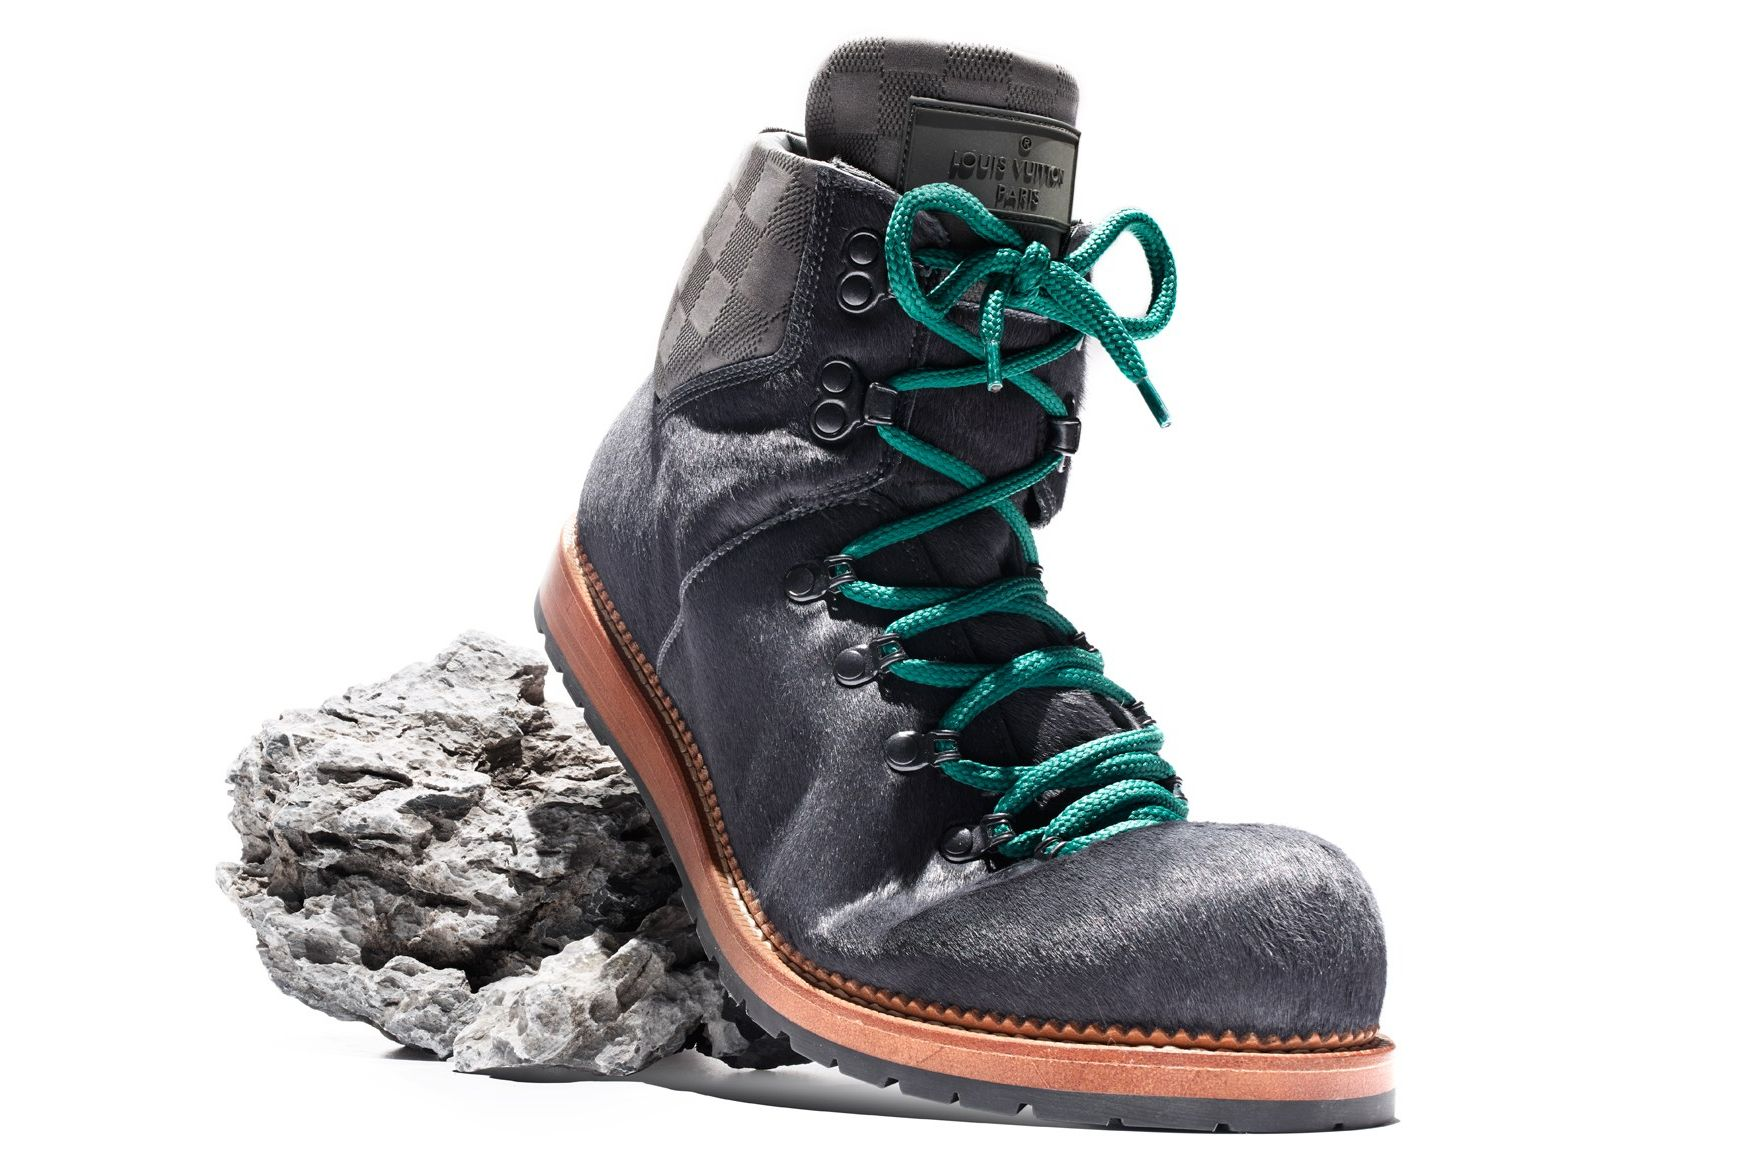 Guide: The Most Stylish Hiking Boots | Men's Grooming, Fashion ...